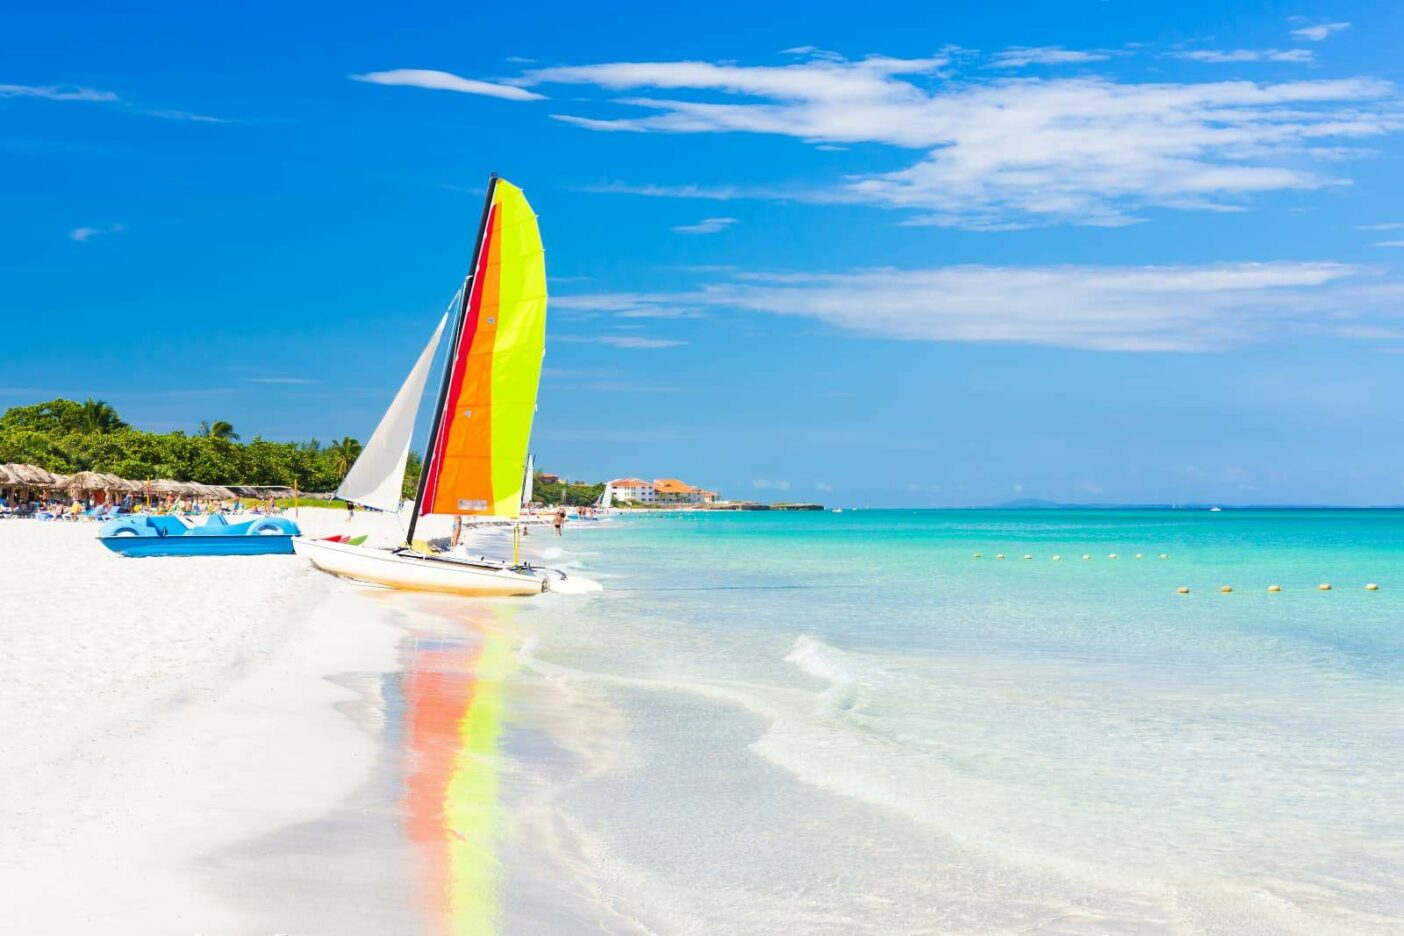 A sunny day ina white sand beach of Varadero in Cuba with a rainbow coloured sailboat